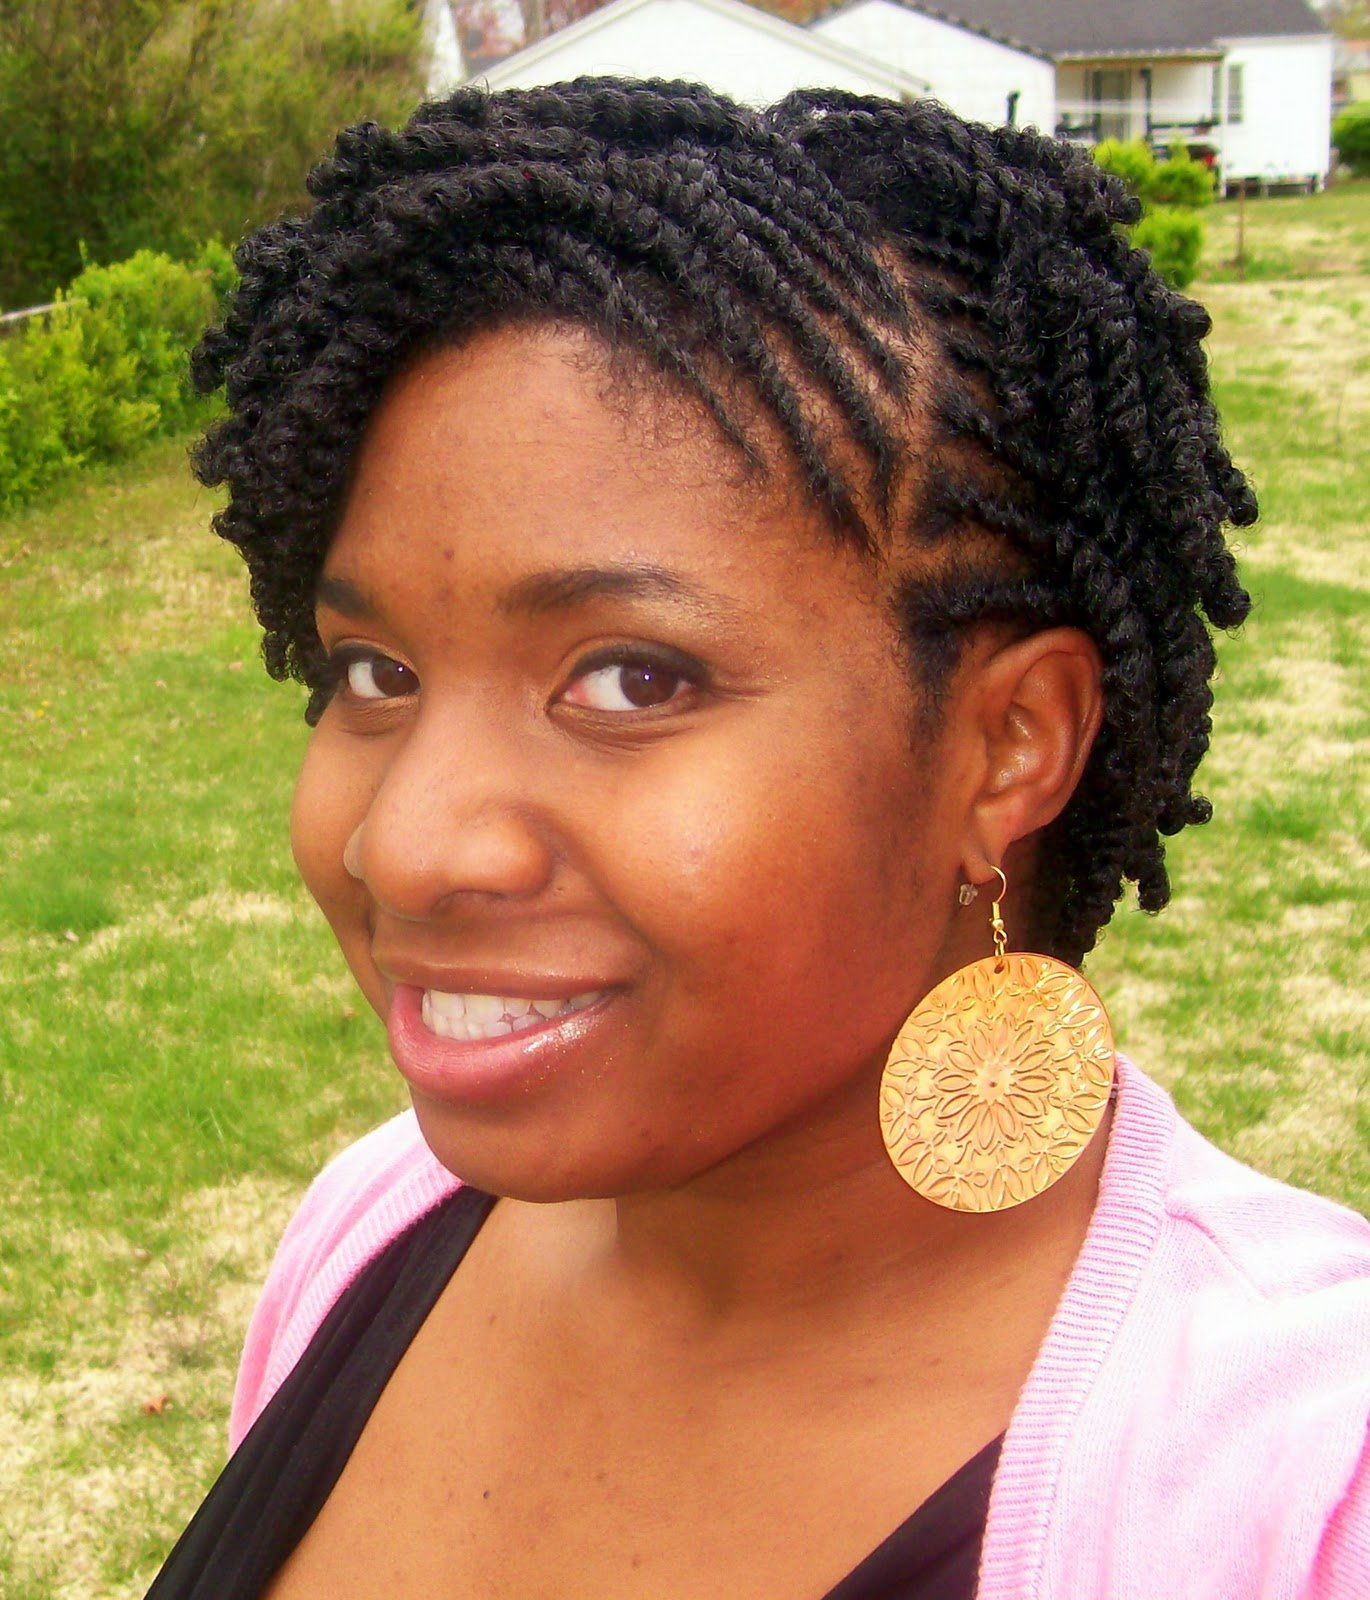 New Frostoppa Ms Gg S Natural Hair Journey And Natural Hair Blog Ain T Nothing But A Ms Gg Thang Ideas With Pictures